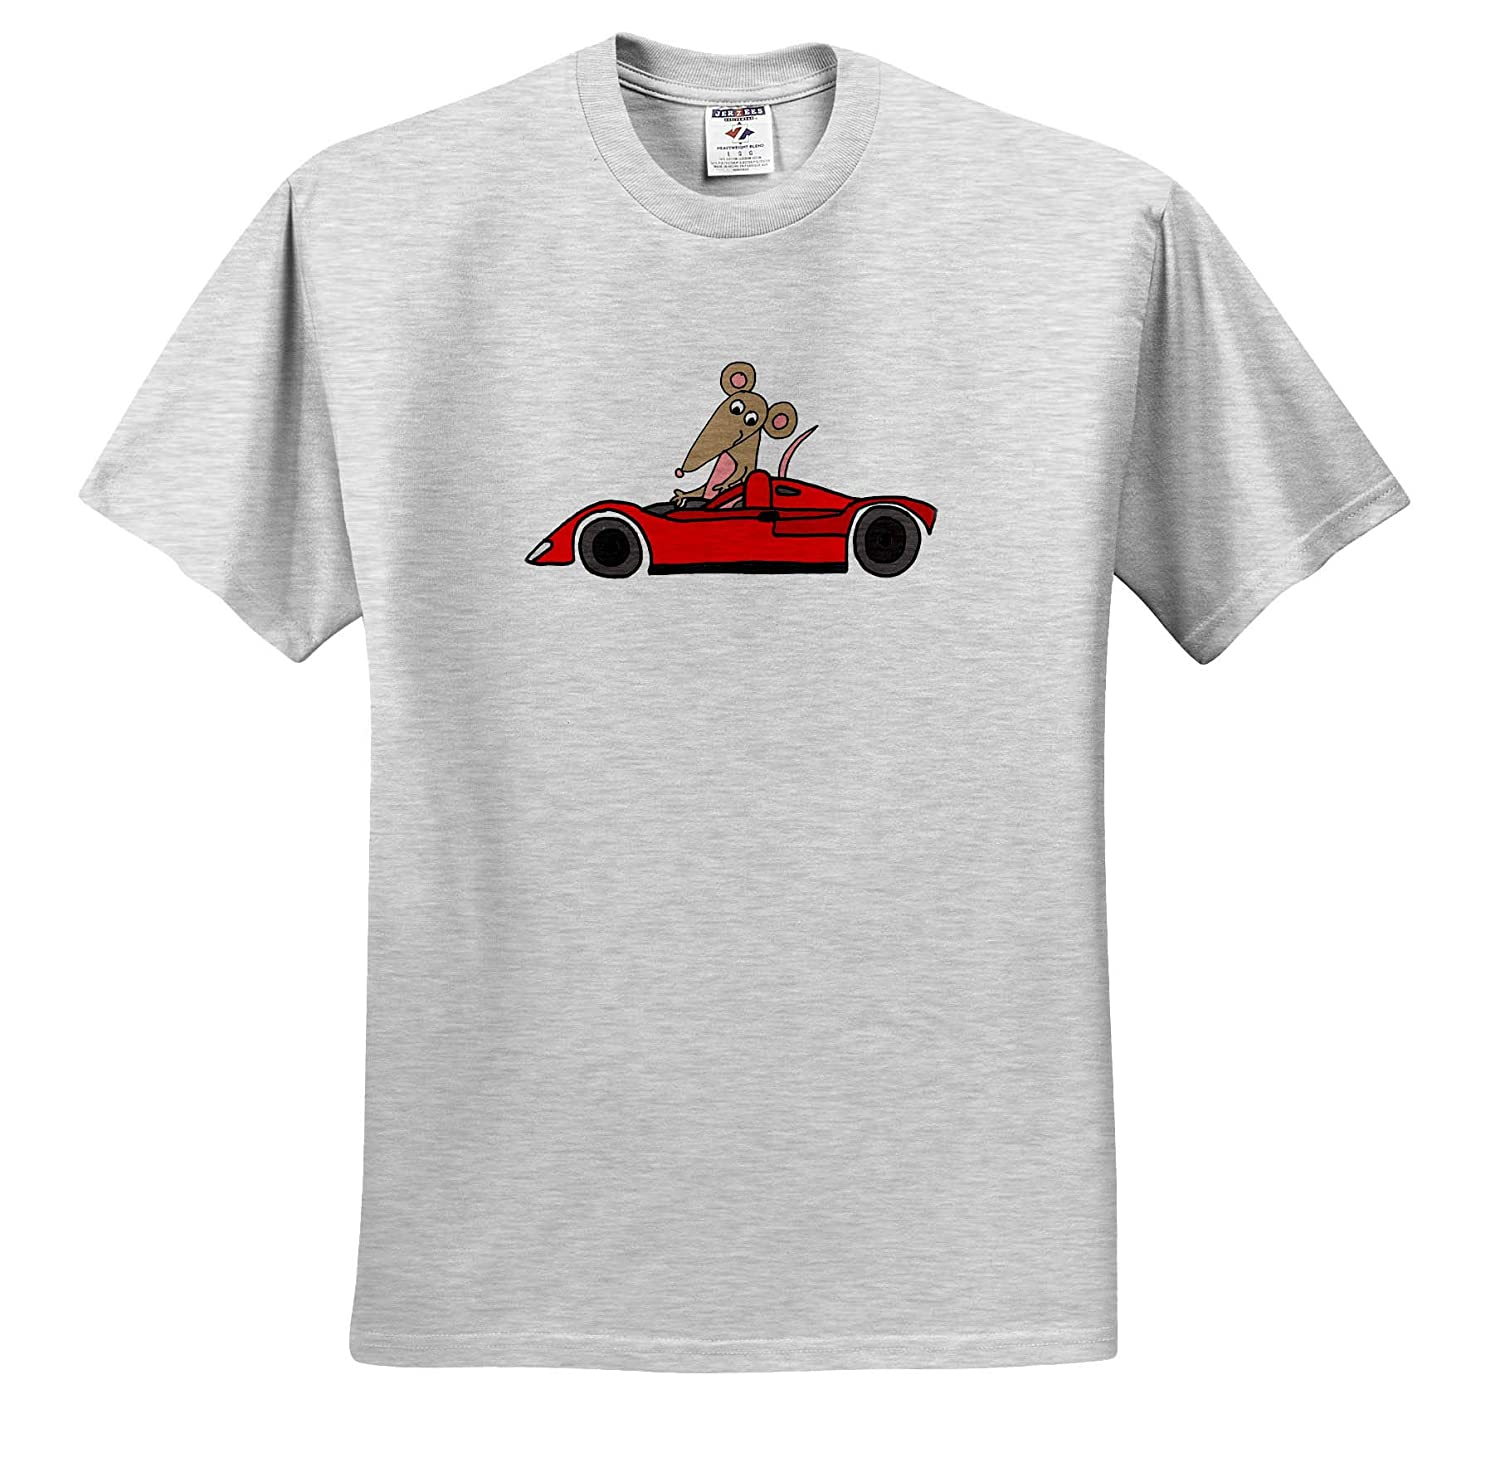 Funny Cool Funny Rat Race Satire with Rat in Race car Cartoon 3dRose All Smiles Art Adult T-Shirt XL ts/_315999